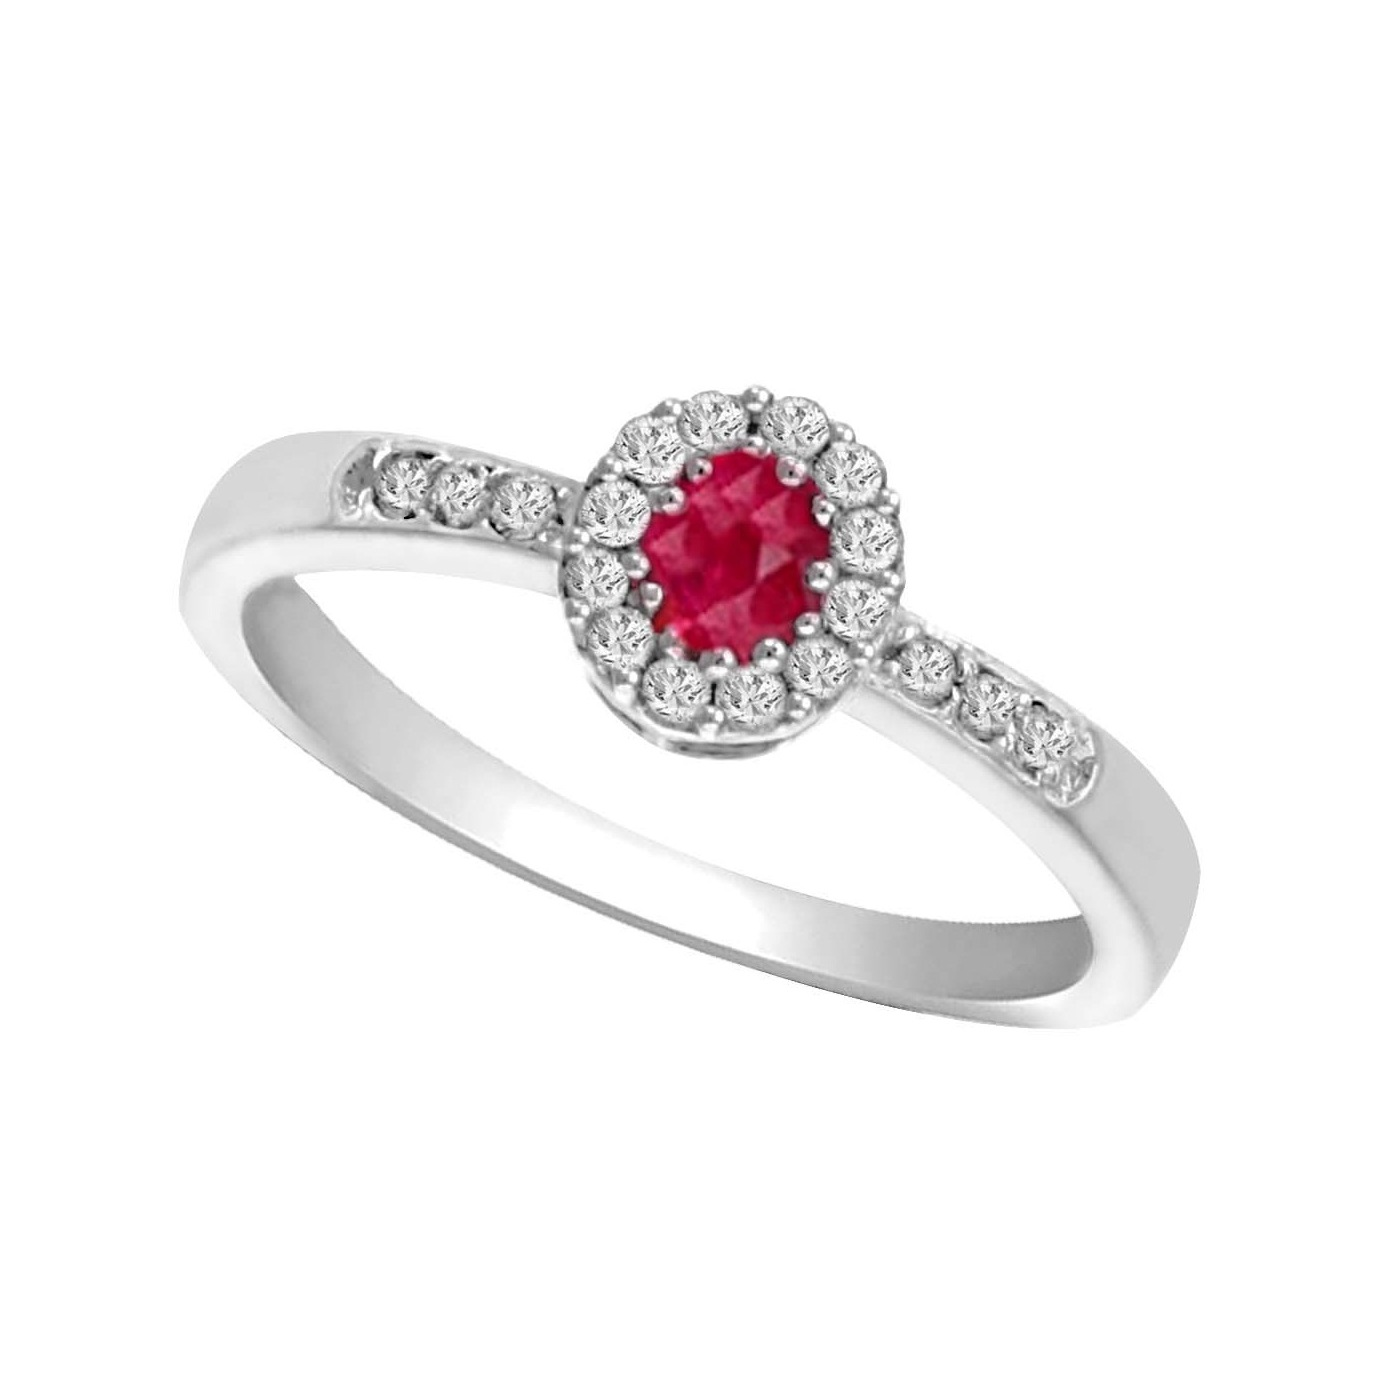 14K White Gold Color Ensembles Halo Prong Ruby Ring 1/6CT Moseley Diamond Showcase Inc Columbia, SC